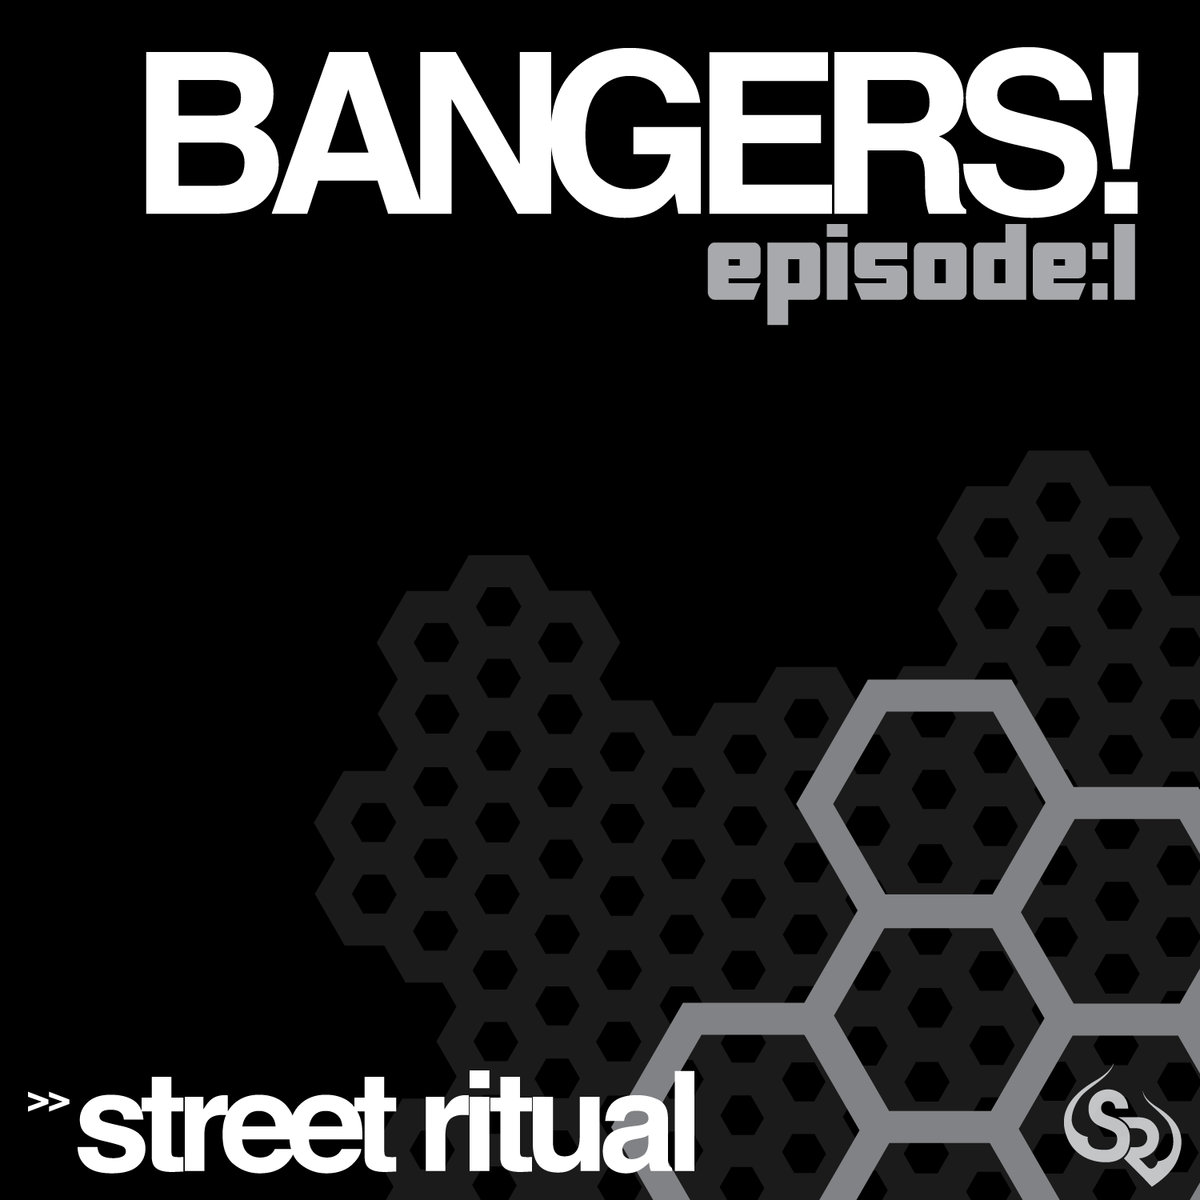 Le Moti - Navigation @ 'Various Artists - Bangers! Episode:1' album (bass, electronic)